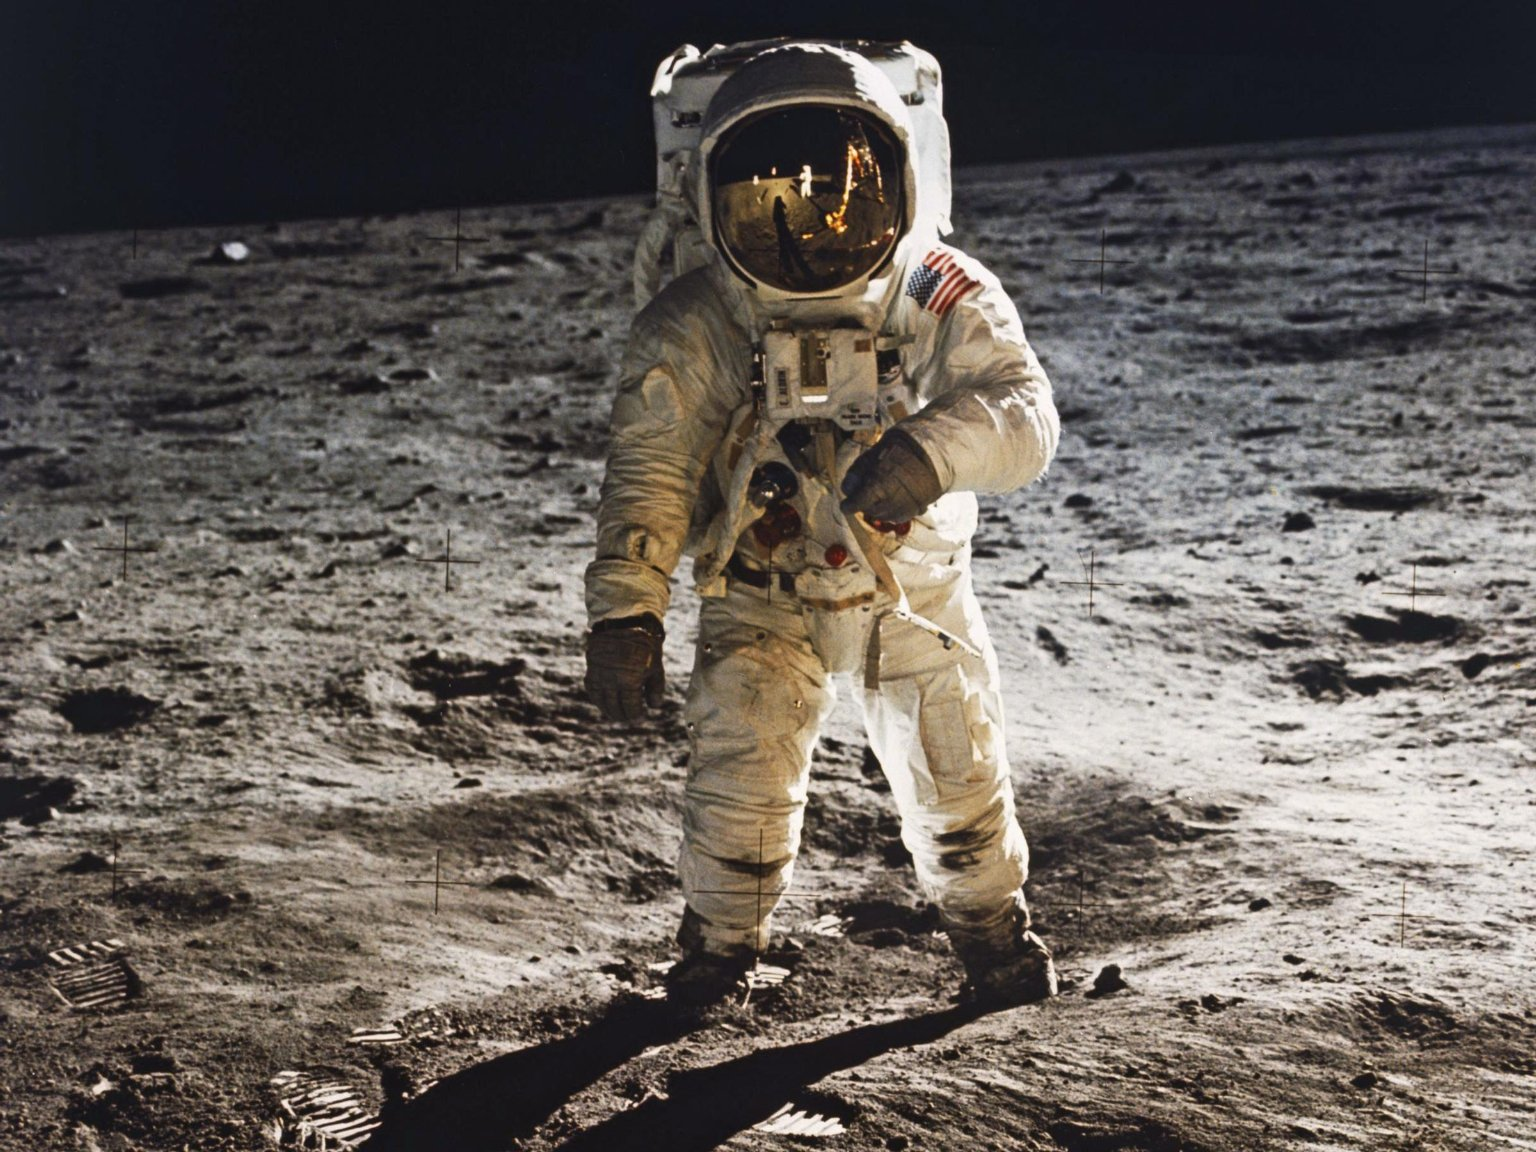 'One Giant Leap': As Apollo 11 Moon Landing Turns 45, NASA Aims for Mars